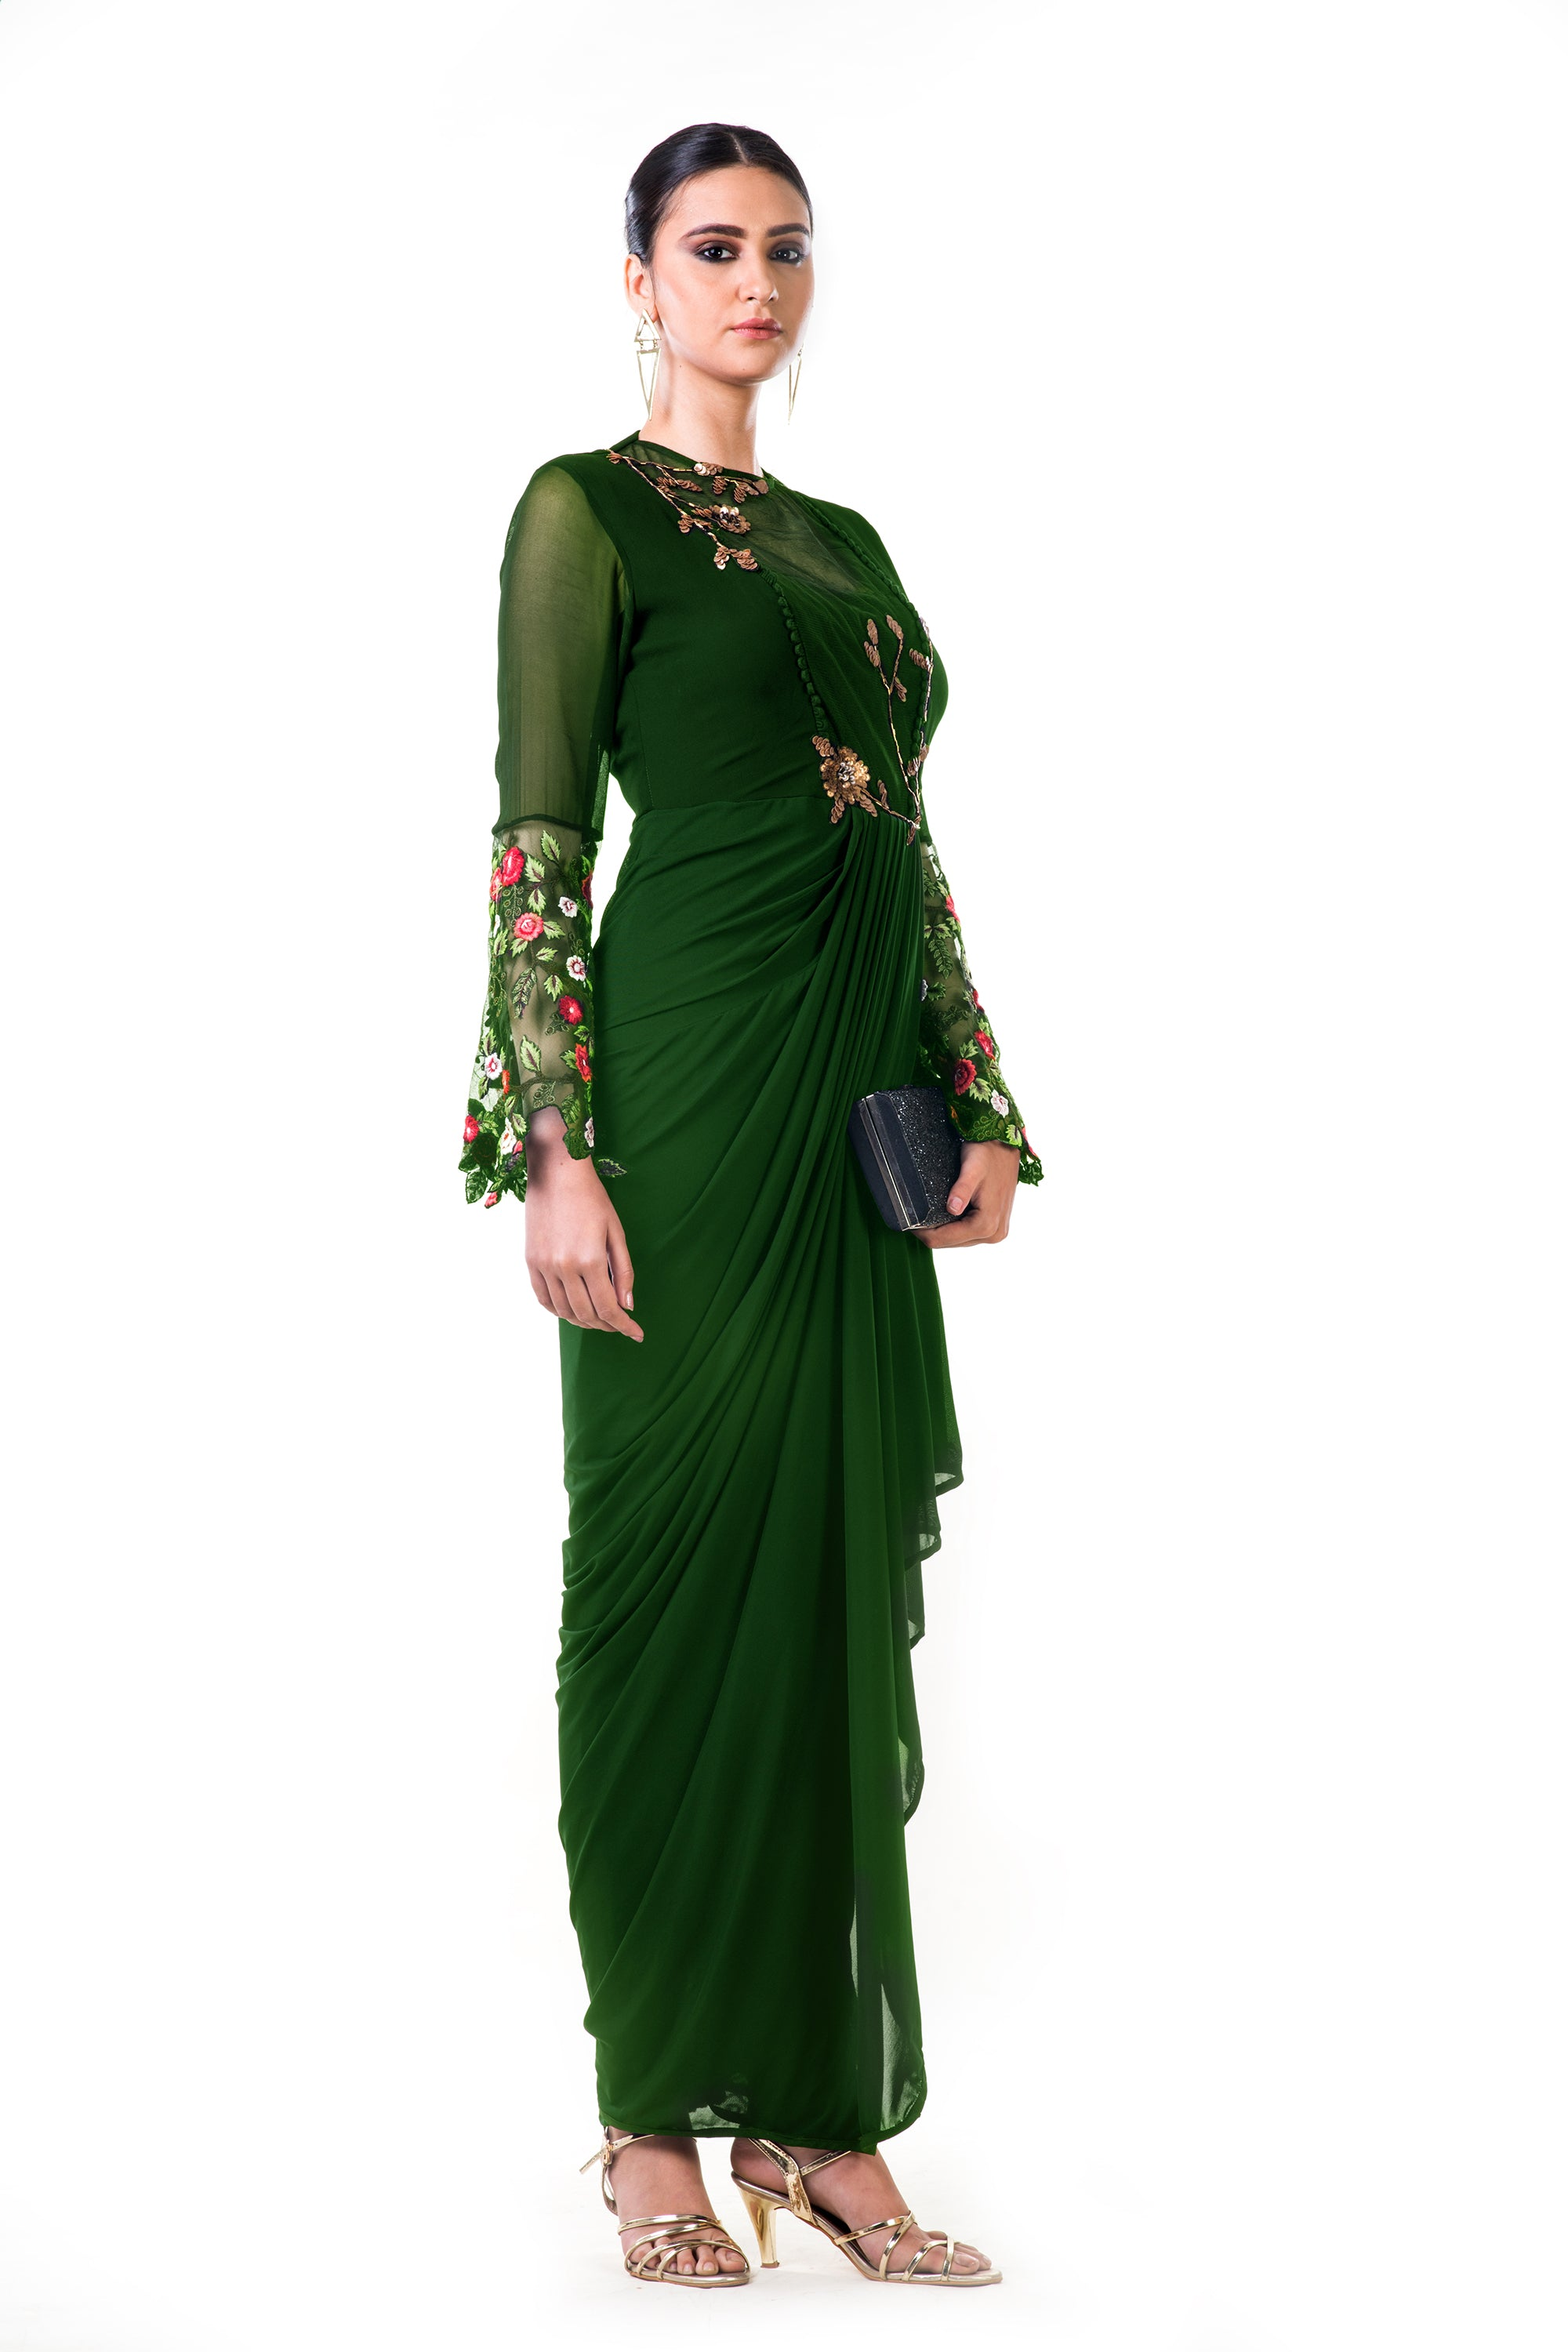 Green Embroidered Bell Sleeves Draped Dress Side